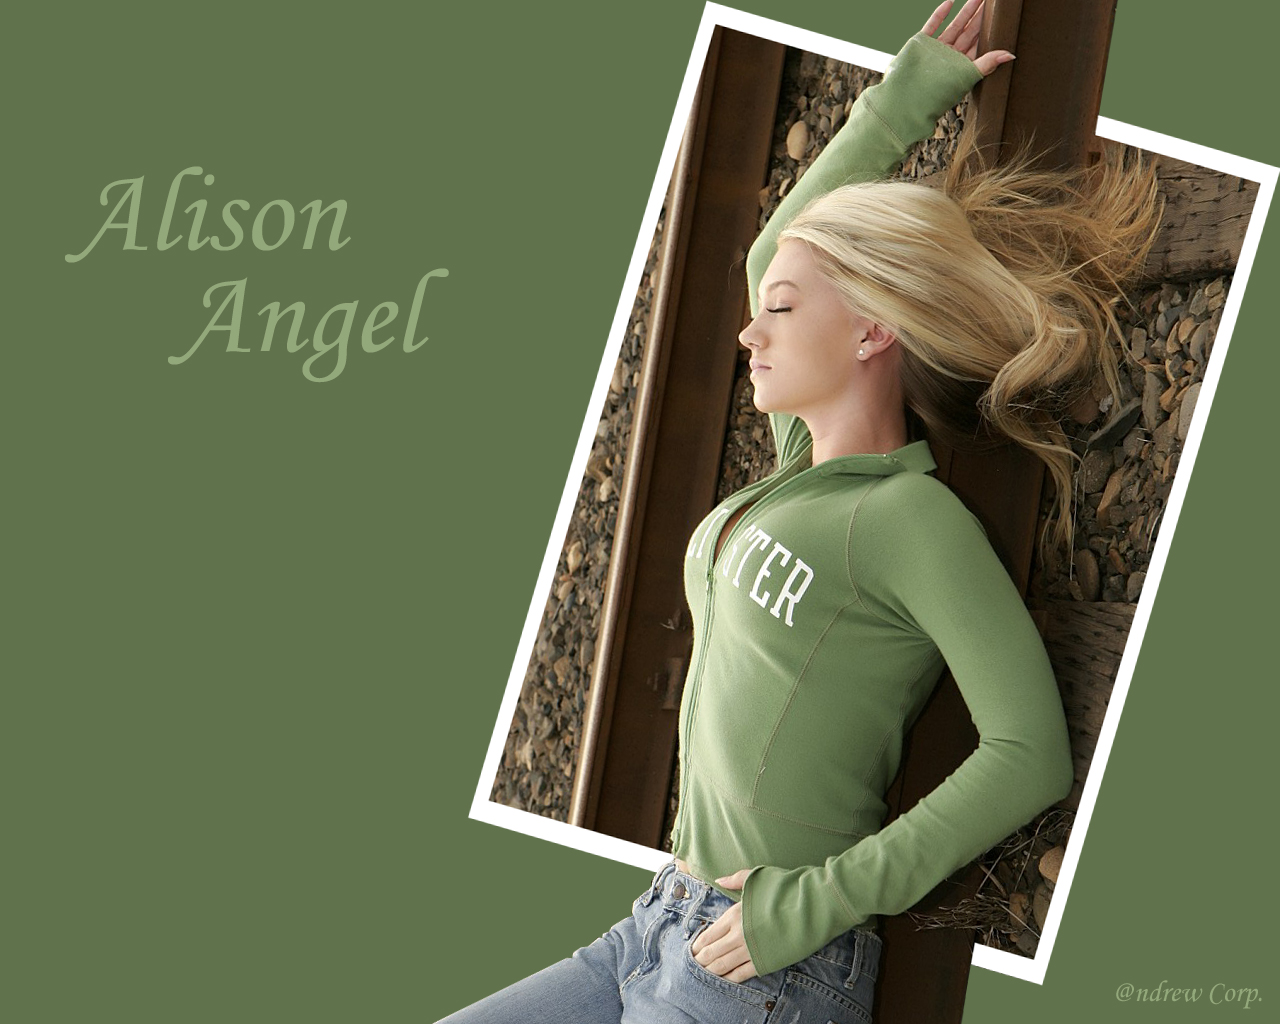 Download celebs alisonangel wallpaper, 'Alison angel 1'.